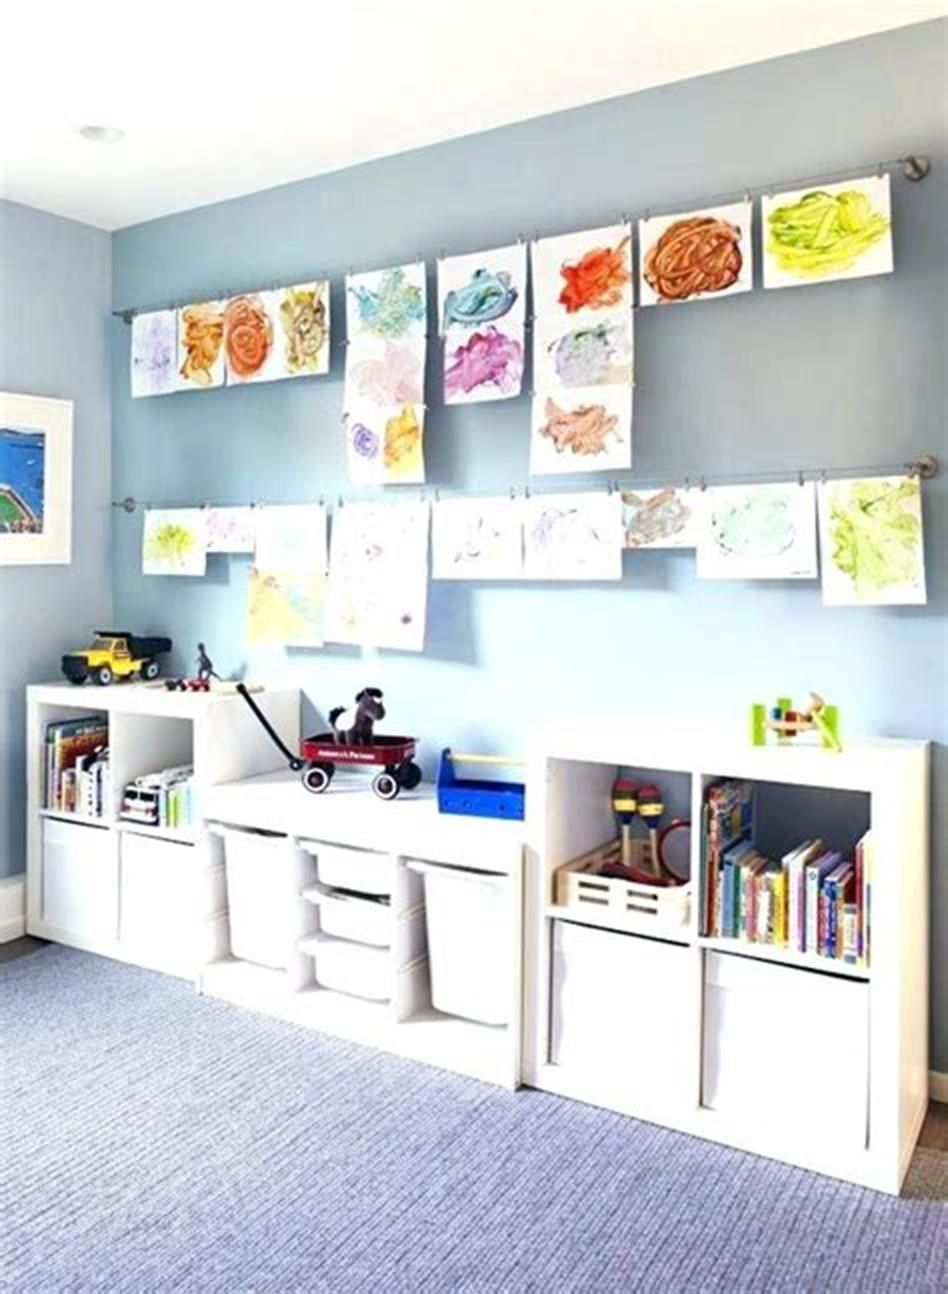 30 Best Cheap Ikea Kids Playroom Ideas For 2019 Viralinspirations Kids Room Organization Playroom Storage Playroom Organization